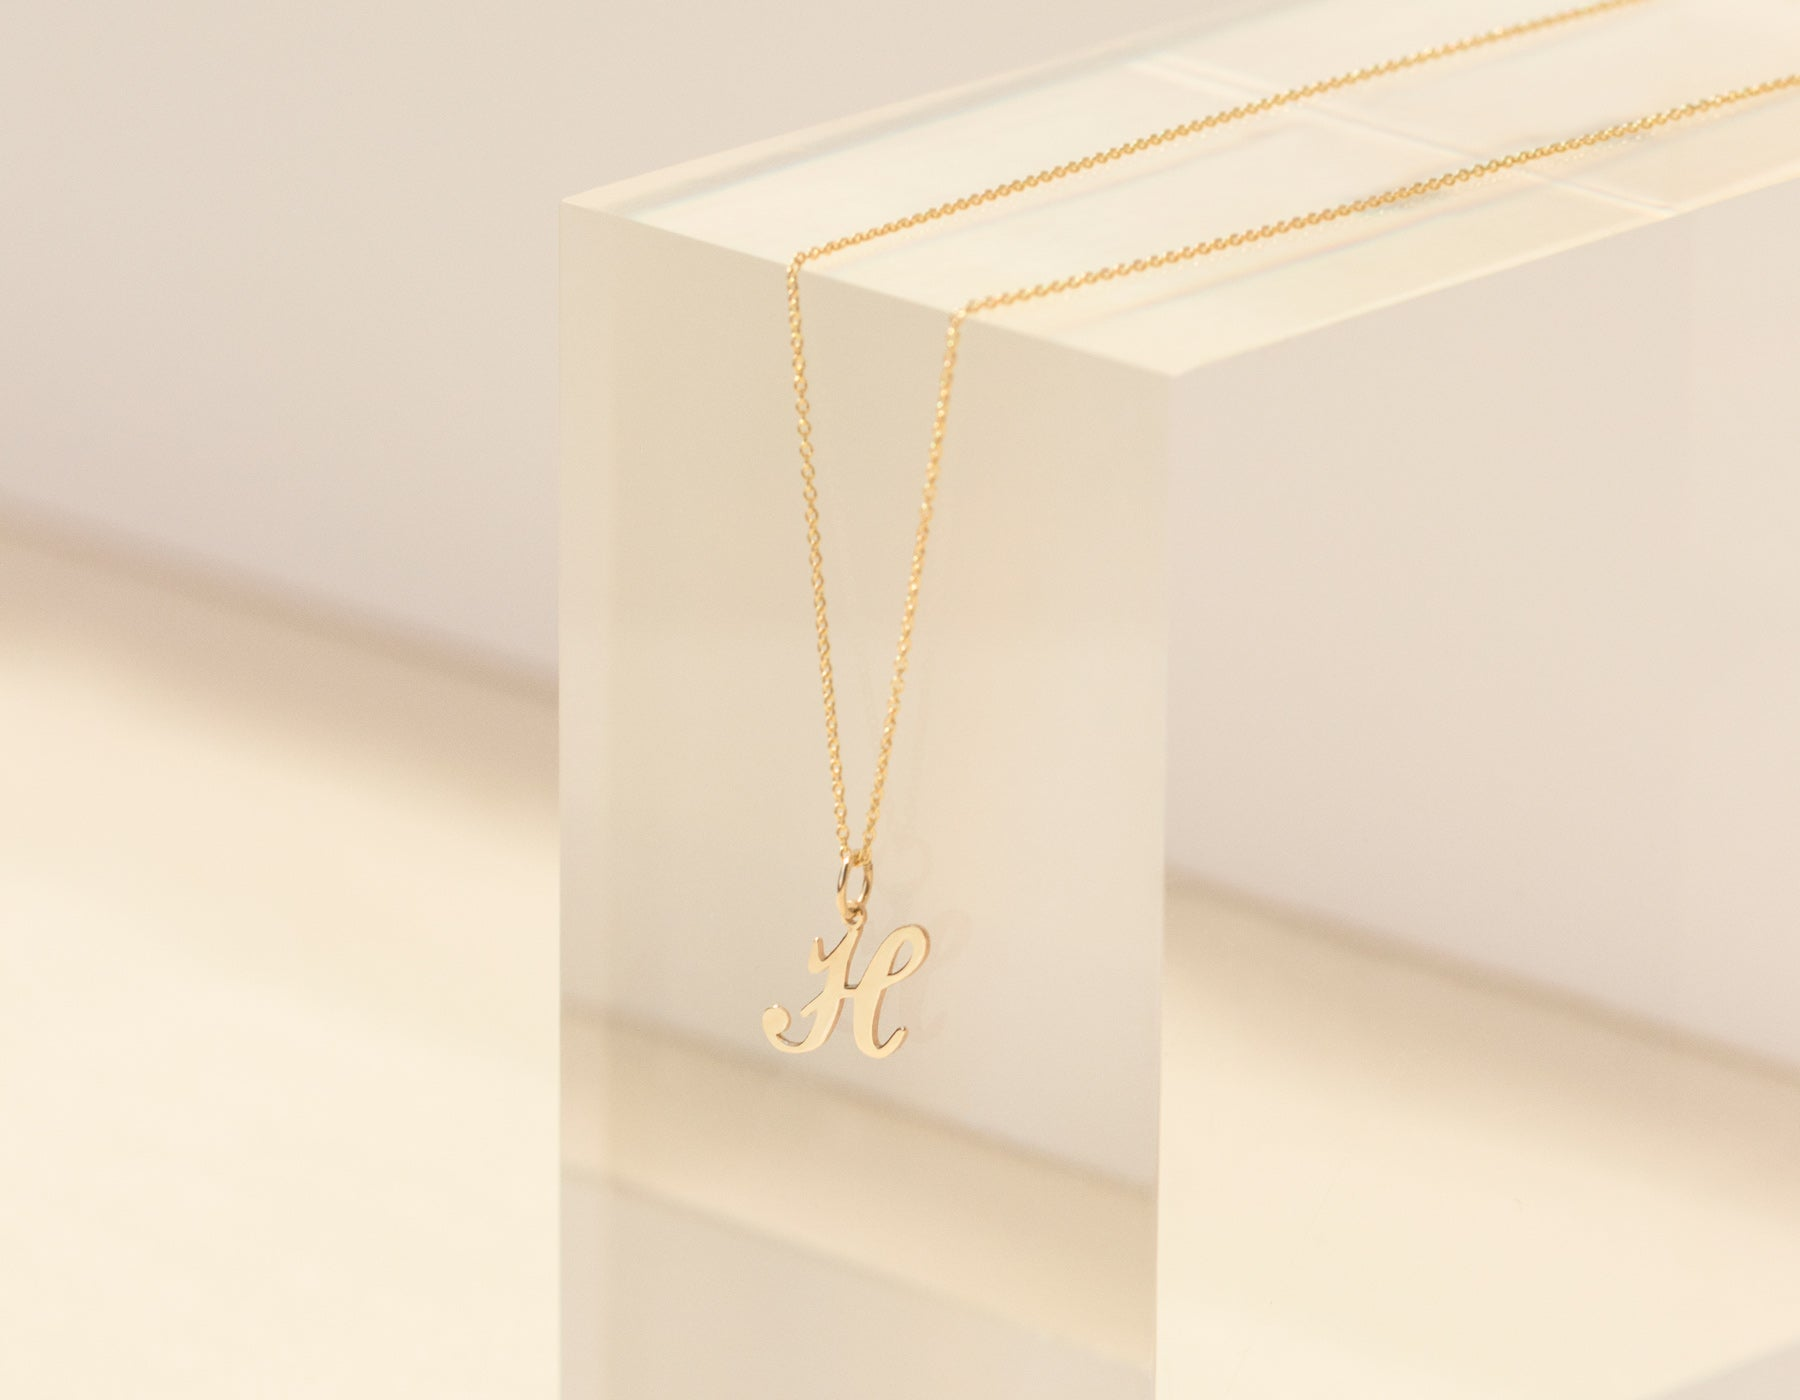 258ad3cc9654 Classic minimalist 14k solid gold letter pendant necklace personalized vrai and  oro sustainable jewelry